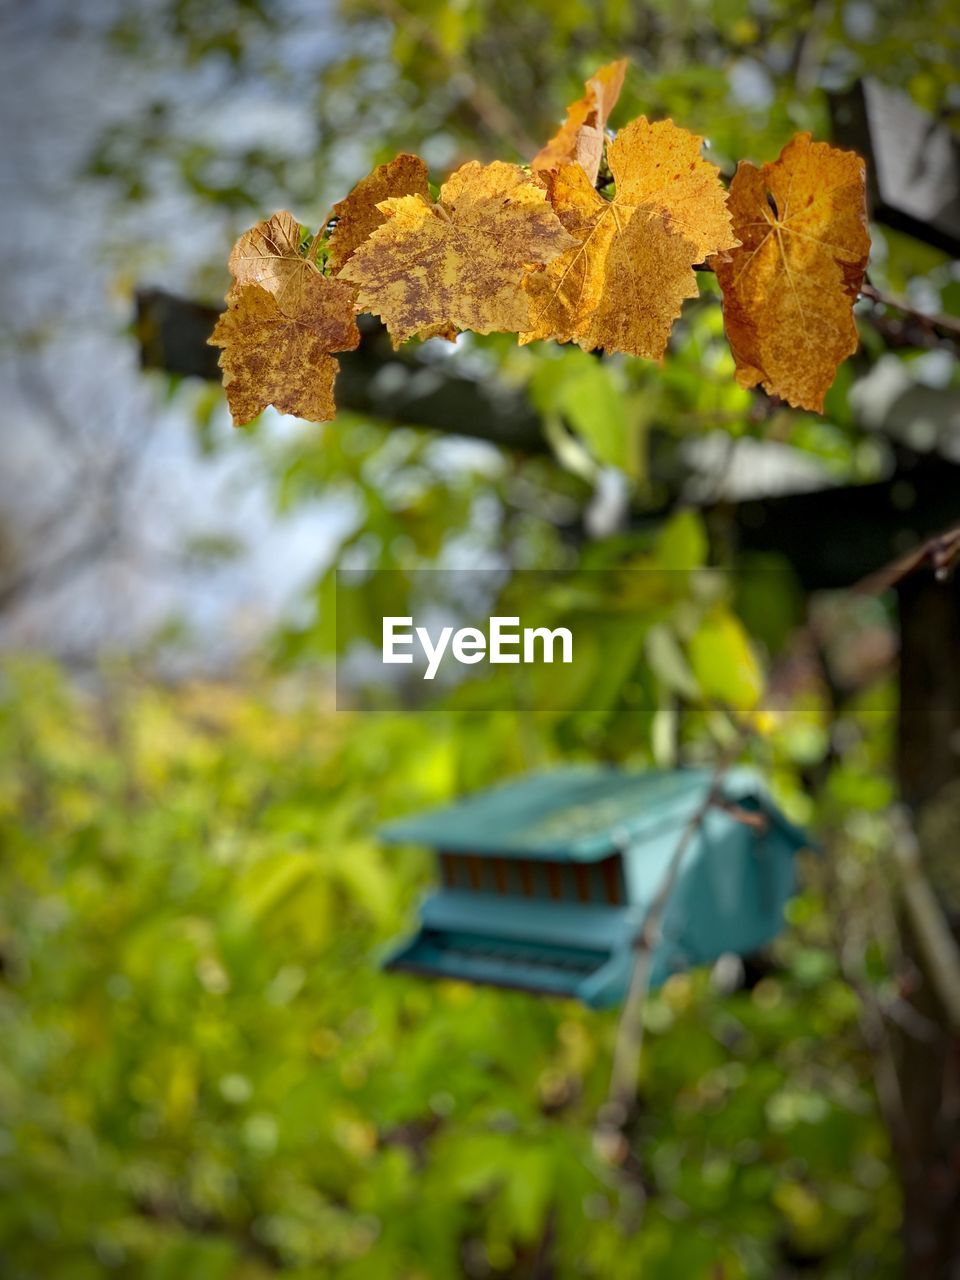 leaf, plant part, plant, nature, growth, tree, day, autumn, no people, selective focus, change, beauty in nature, outdoors, green color, food, close-up, food and drink, focus on foreground, land, field, leaves